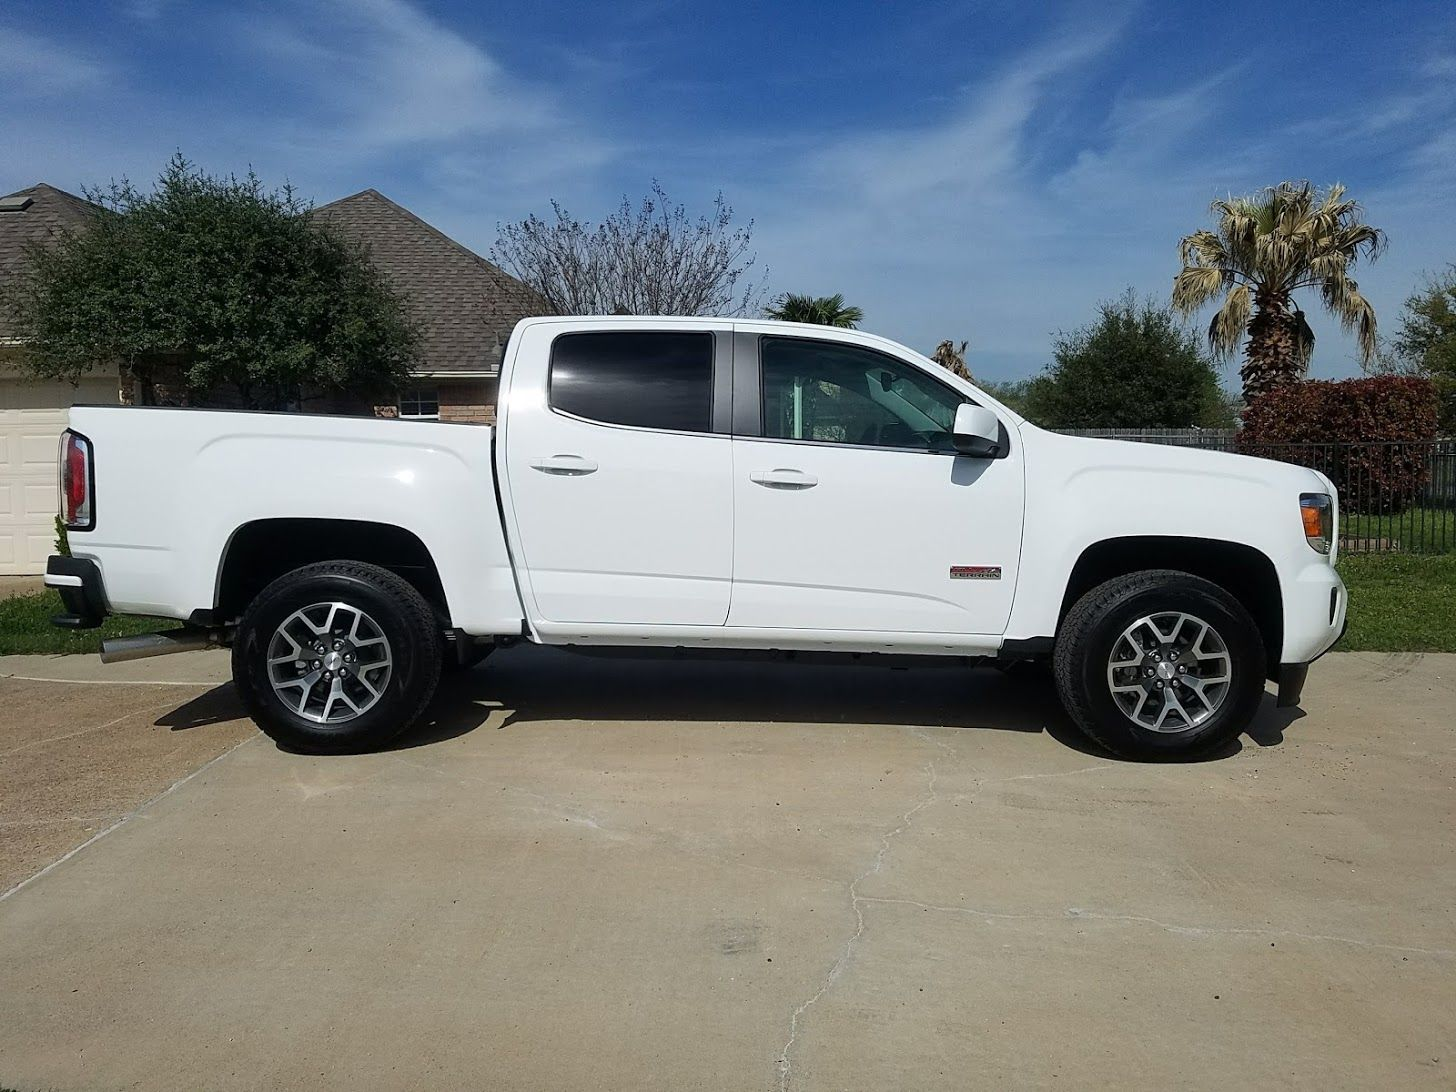 2018 Gmc Canyon All Terrain Ccsb Diesel Gmc Canyon Gmc Canyon